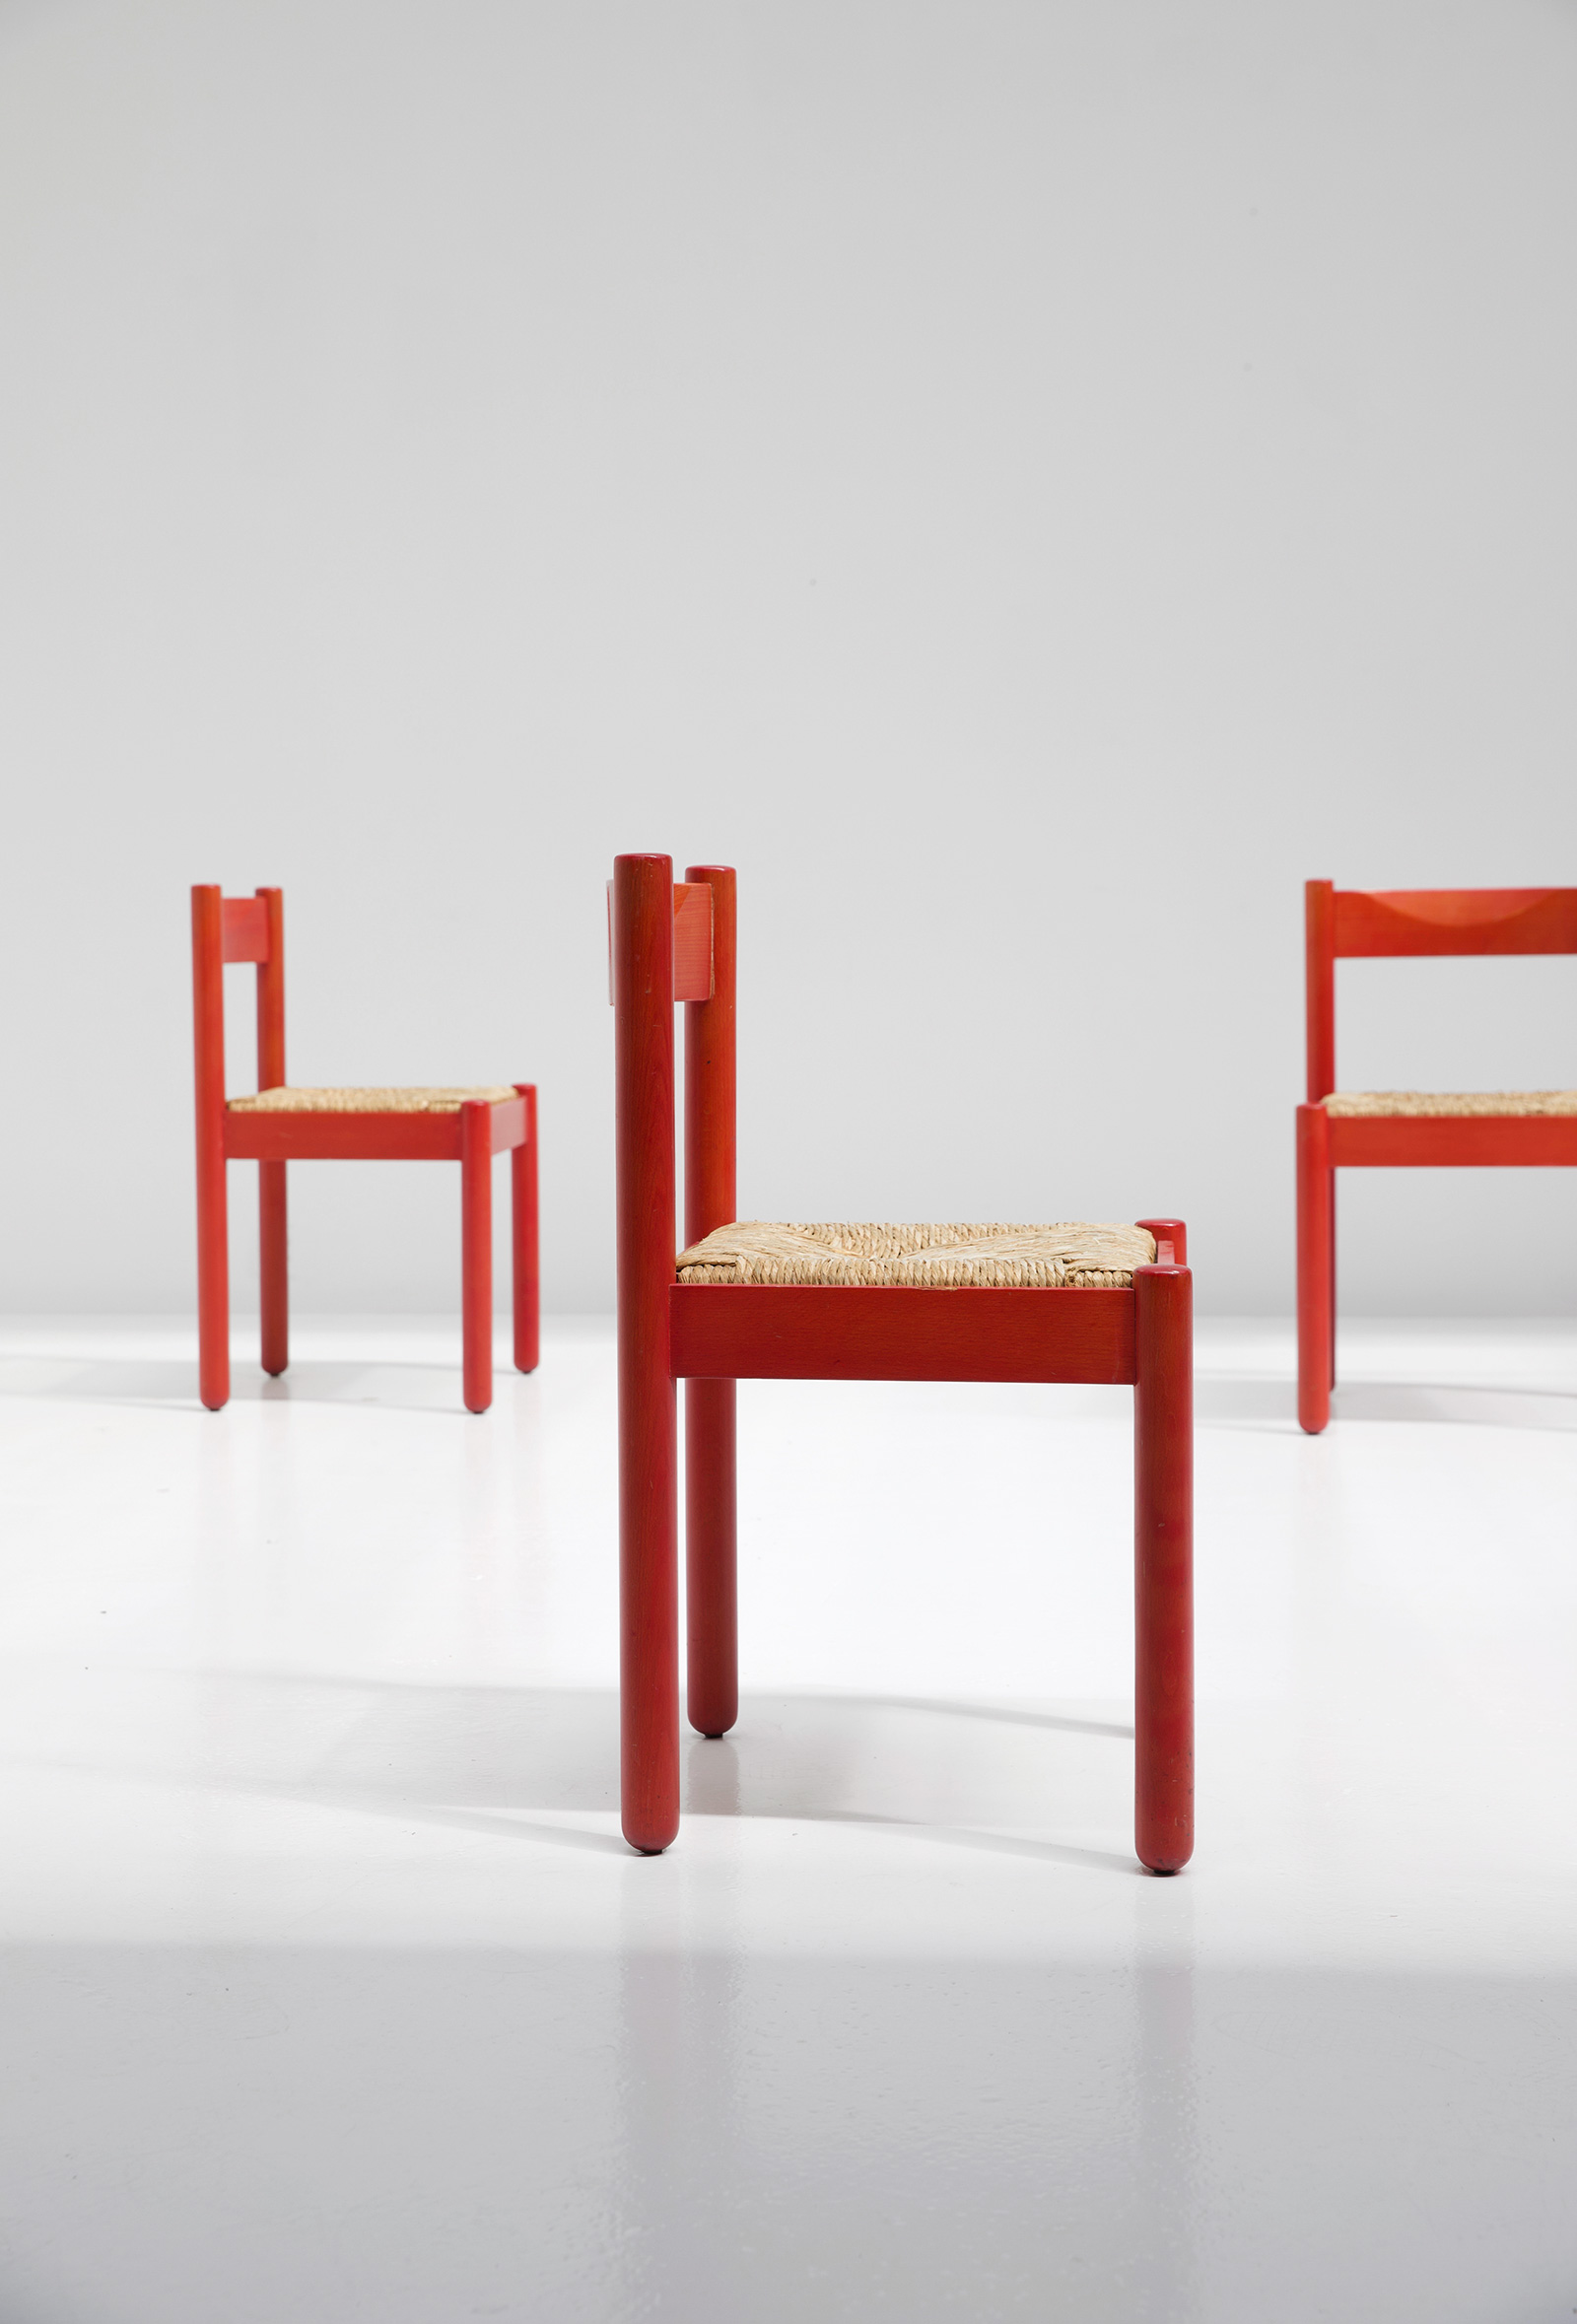 Carimate Chairs by Vico Magistretti for Cassina